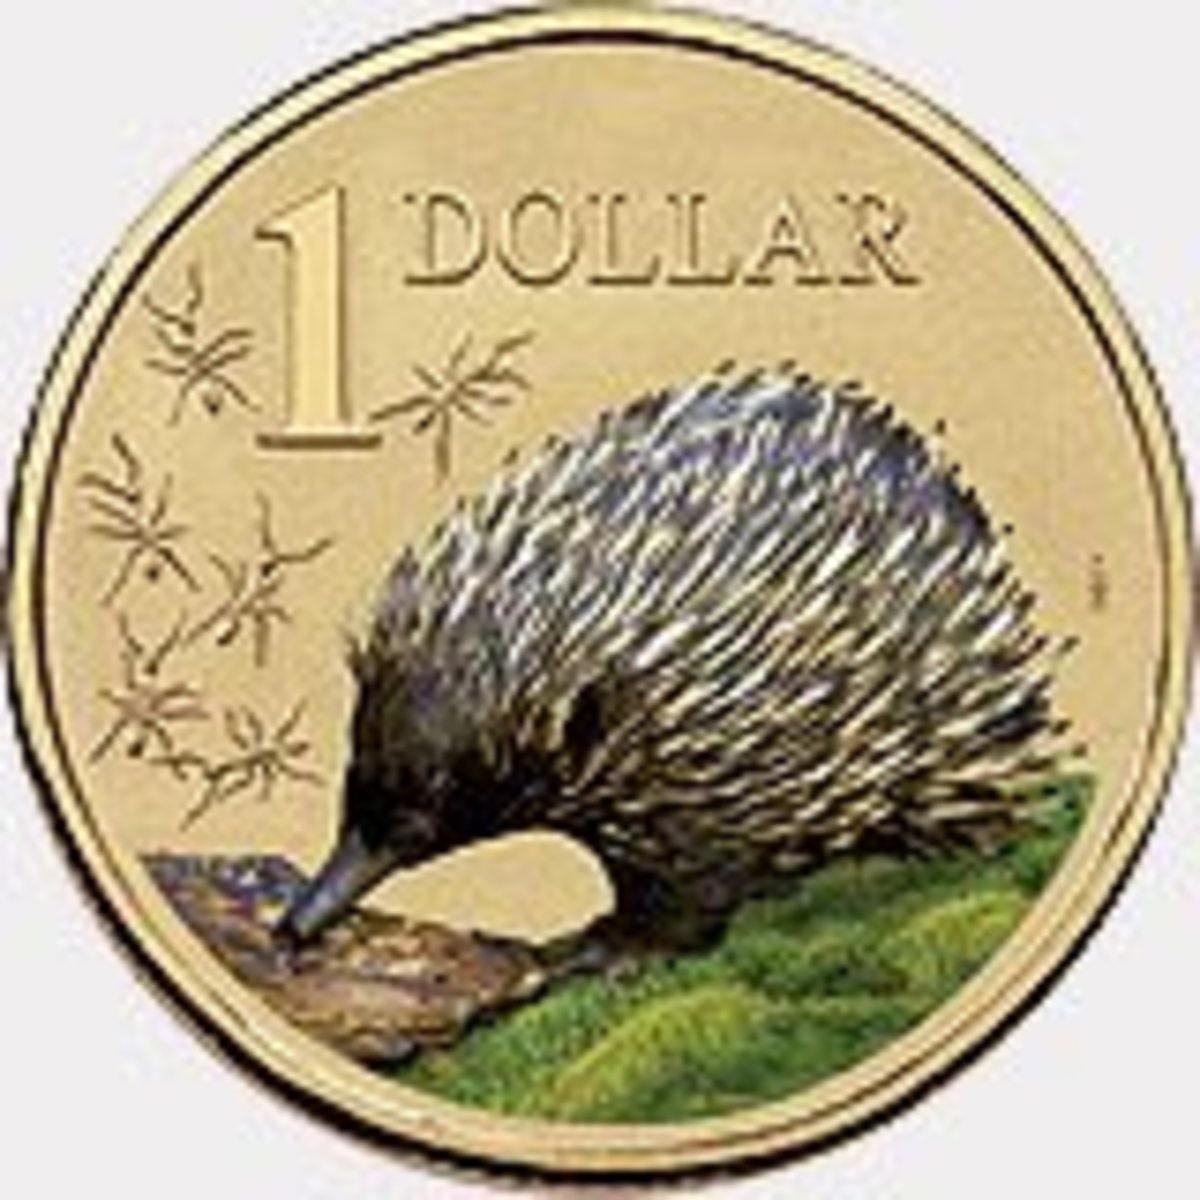 The Echidna on a $1 coin